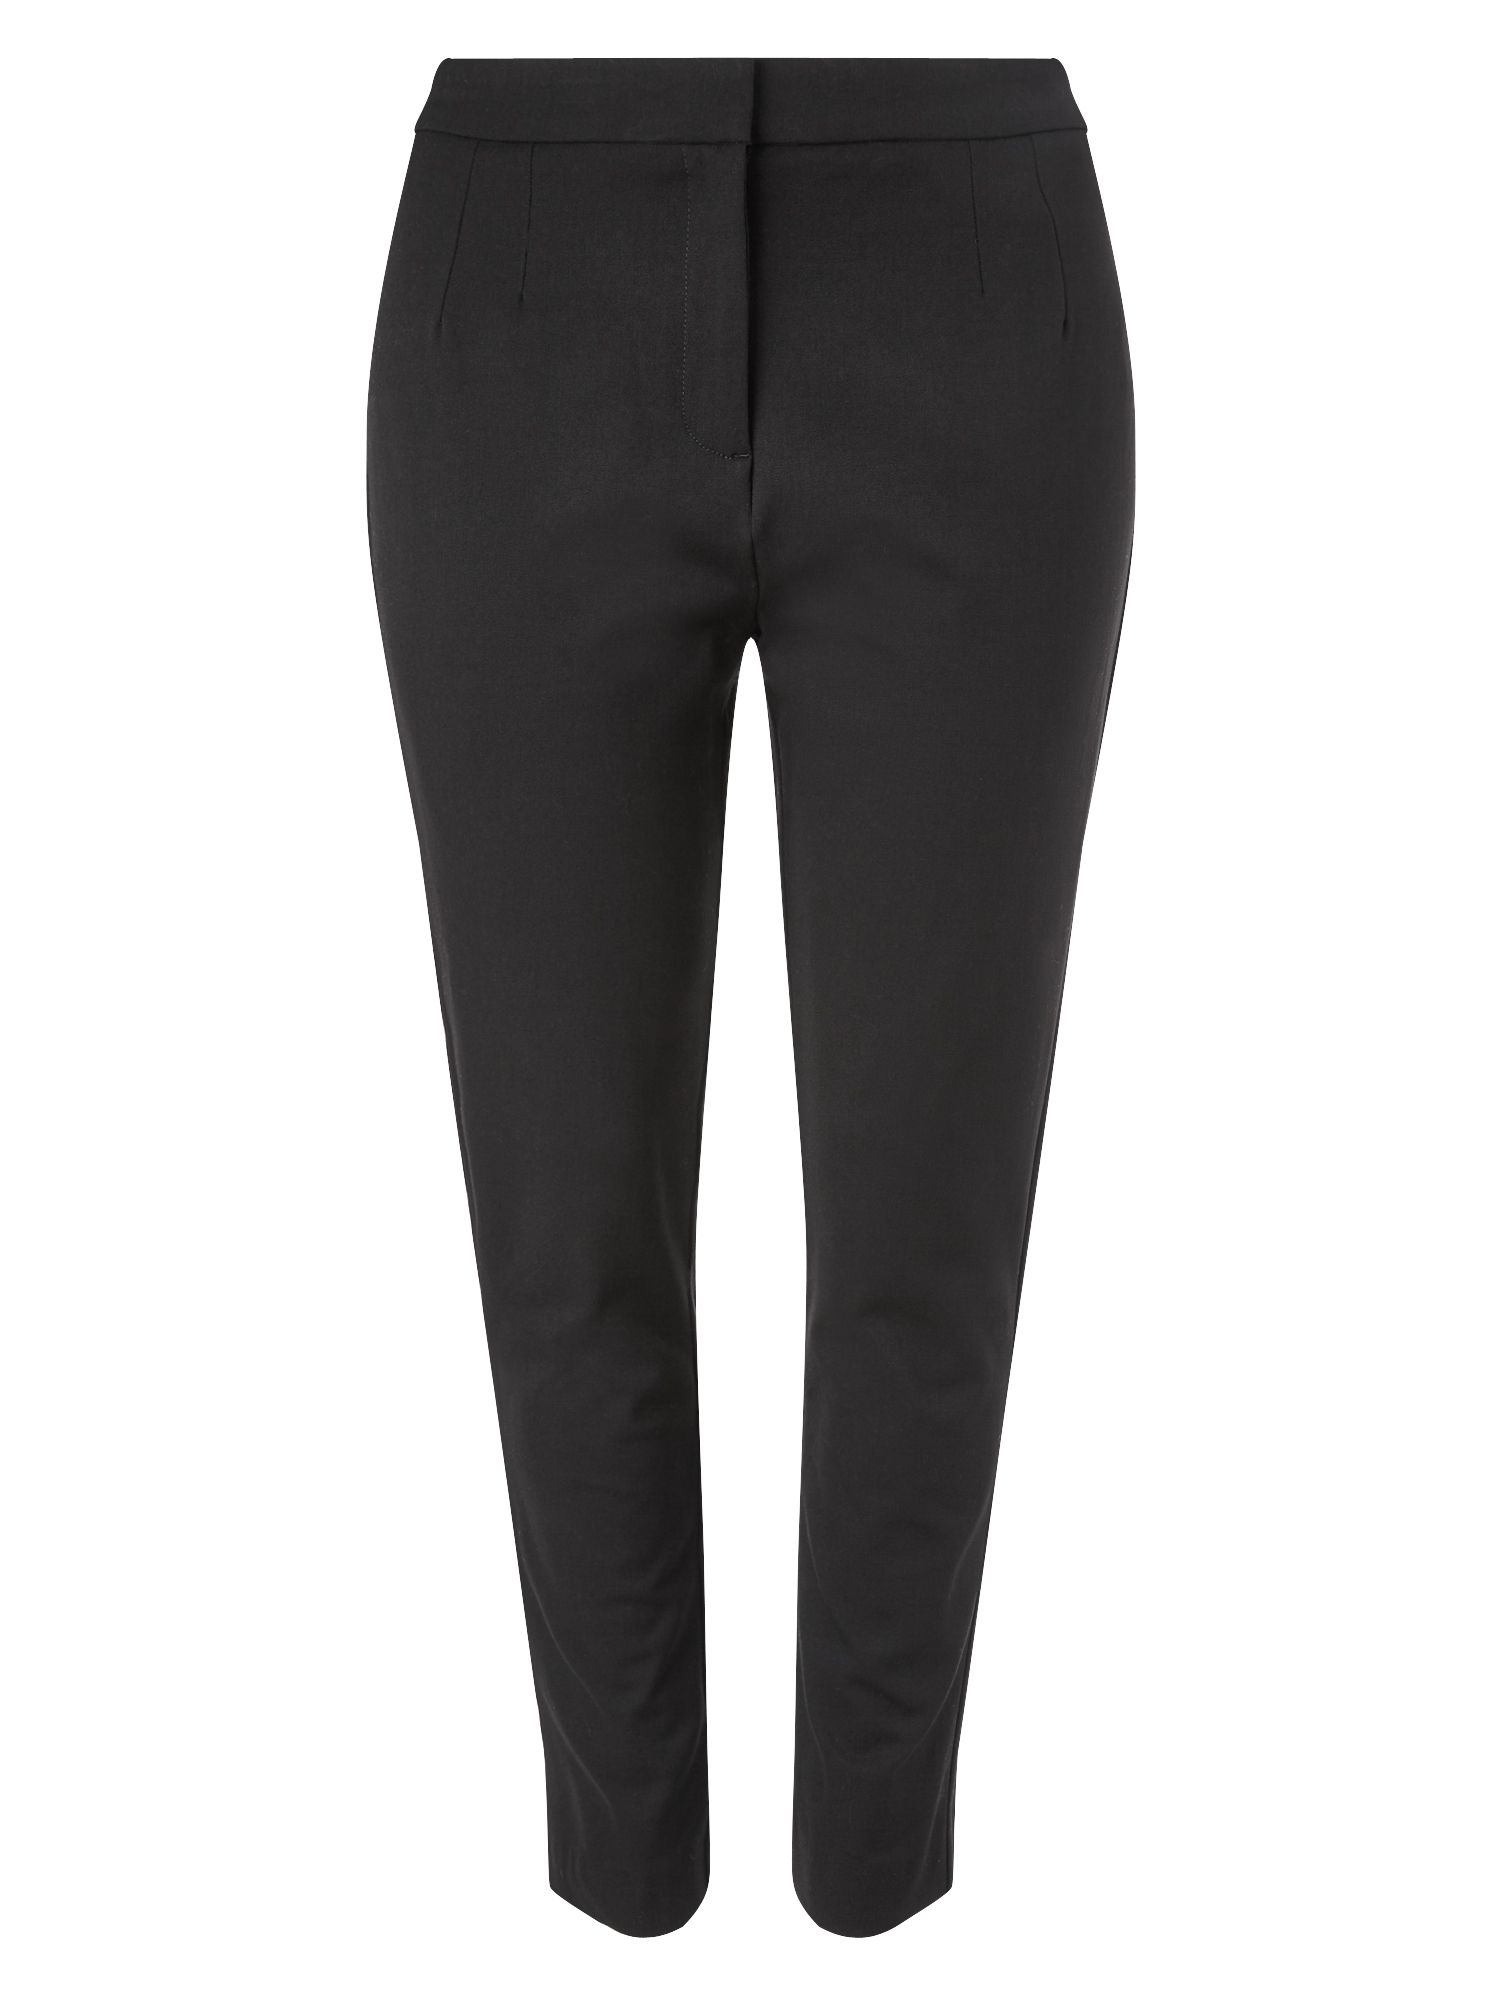 Studio 8 Cressida trouser, Black